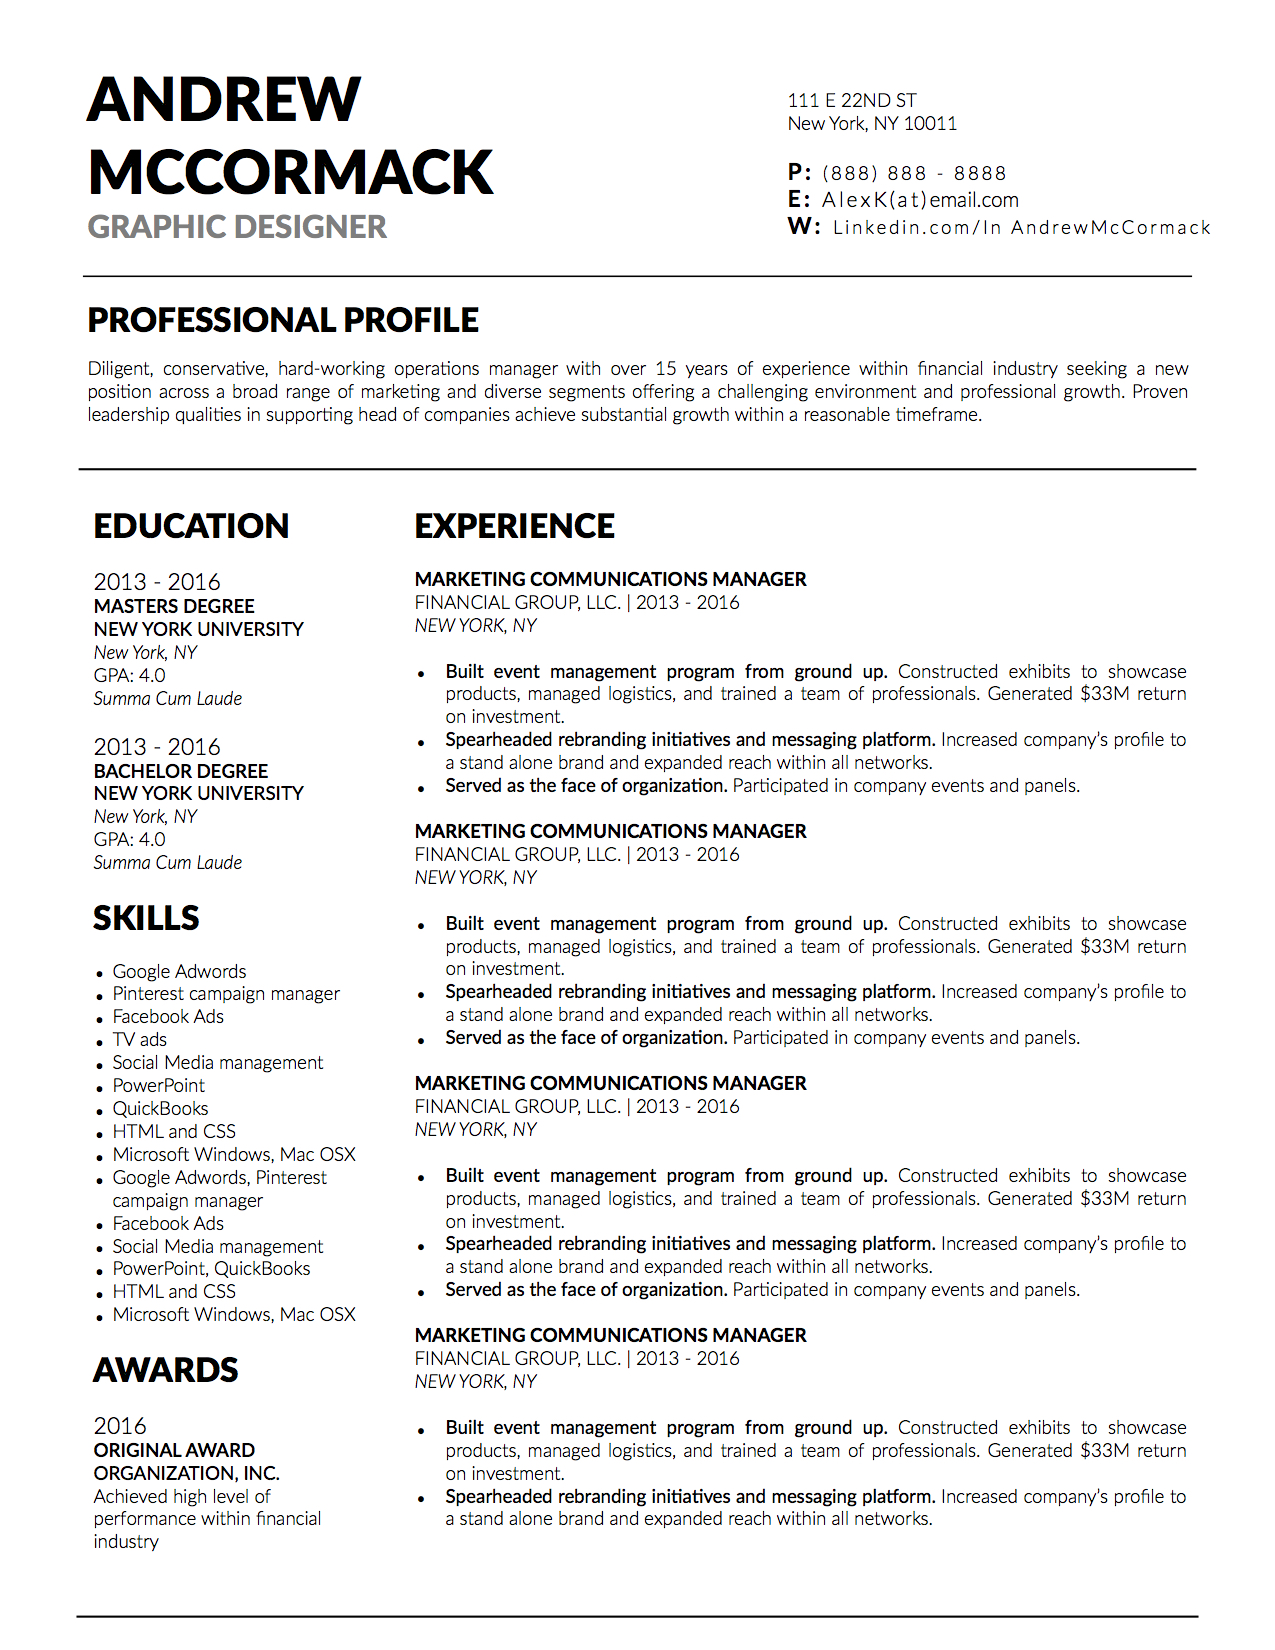 Andrew McCormack Downloadable Resume + Cover Template and Cover Letter Template for Microsoft Word and Apple Pages. This cover letter template is perfect for anyone in the fashion field. The template's design is a modern, unique, colorful, and professional. WE SWEAT THE DETAILS, SO YOU DON'T HAVE TO Stand Out Shop resume templates for Microsoft Word and Apple Pages will help you design a modern and professional resume in minutes! Simply download, open in Microsoft Word or Apple Pages, and input your resume's information. Increase your chances of landing your dream job with a job winning, modern, simple, and scannable resume template for Microsoft Word and Apple Pages. Creating a resume shouldn't suck Simply download a resume template from Stand Out Shop, enter your information in Microsoft Word or Apple Pages and get a beautifully formatted resume in seconds. Create a unique and vivid resume in minutes. Make an impressive resume. Customize your own layout in Microsoft Word or Apple Pages and introduce yourself in an impressive way. You can download your resume at any time. Stand out from other job seekers with a beautiful professional design.